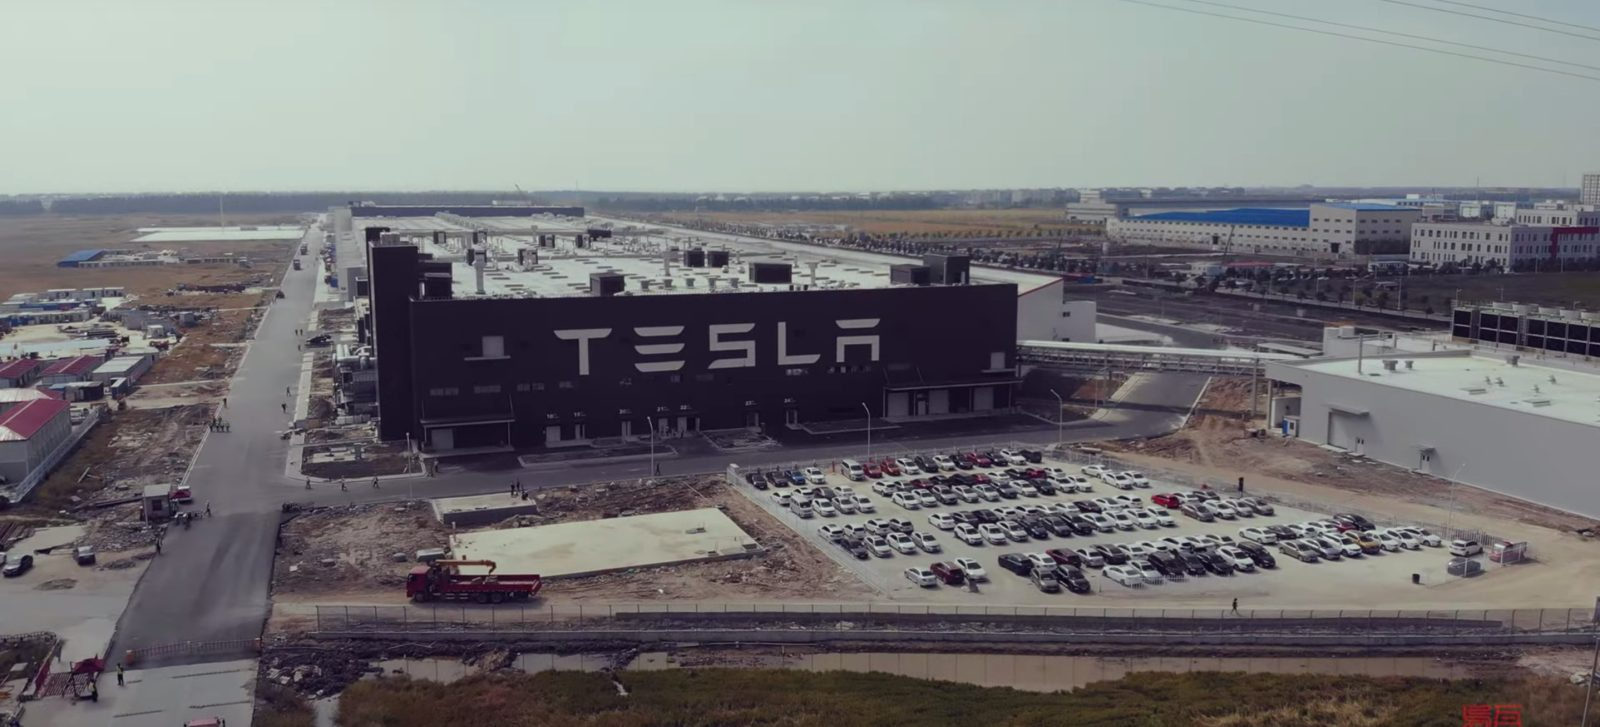 Tesla starts trial production of Chinese Model 3, reportedly plans to sell cars to Gigafactory 3 workers